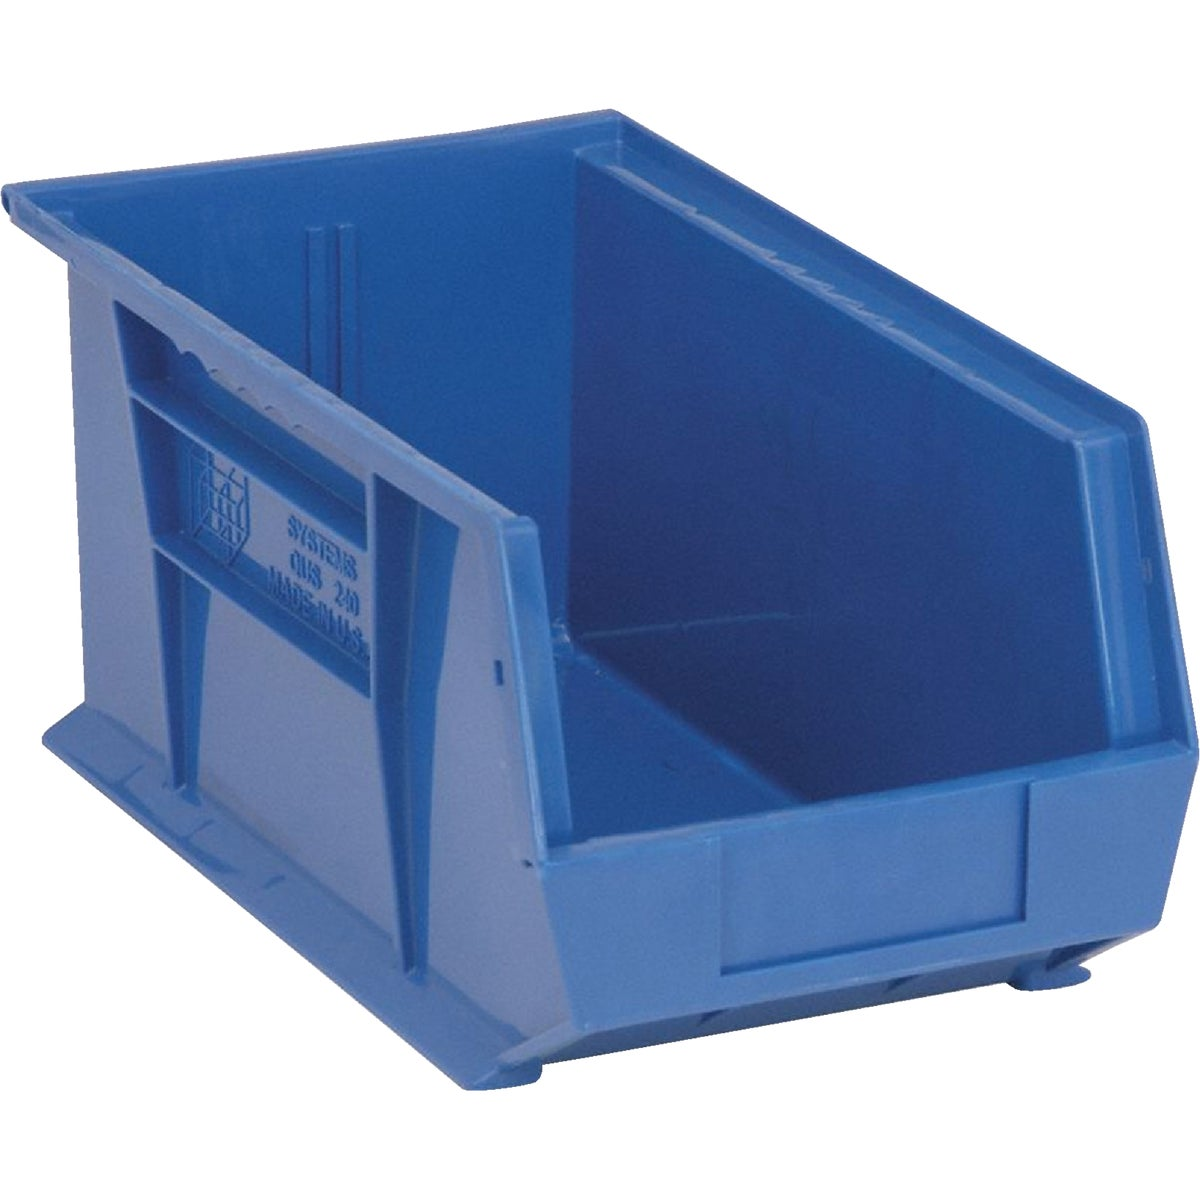 LARGE BLUE STORAGE BIN